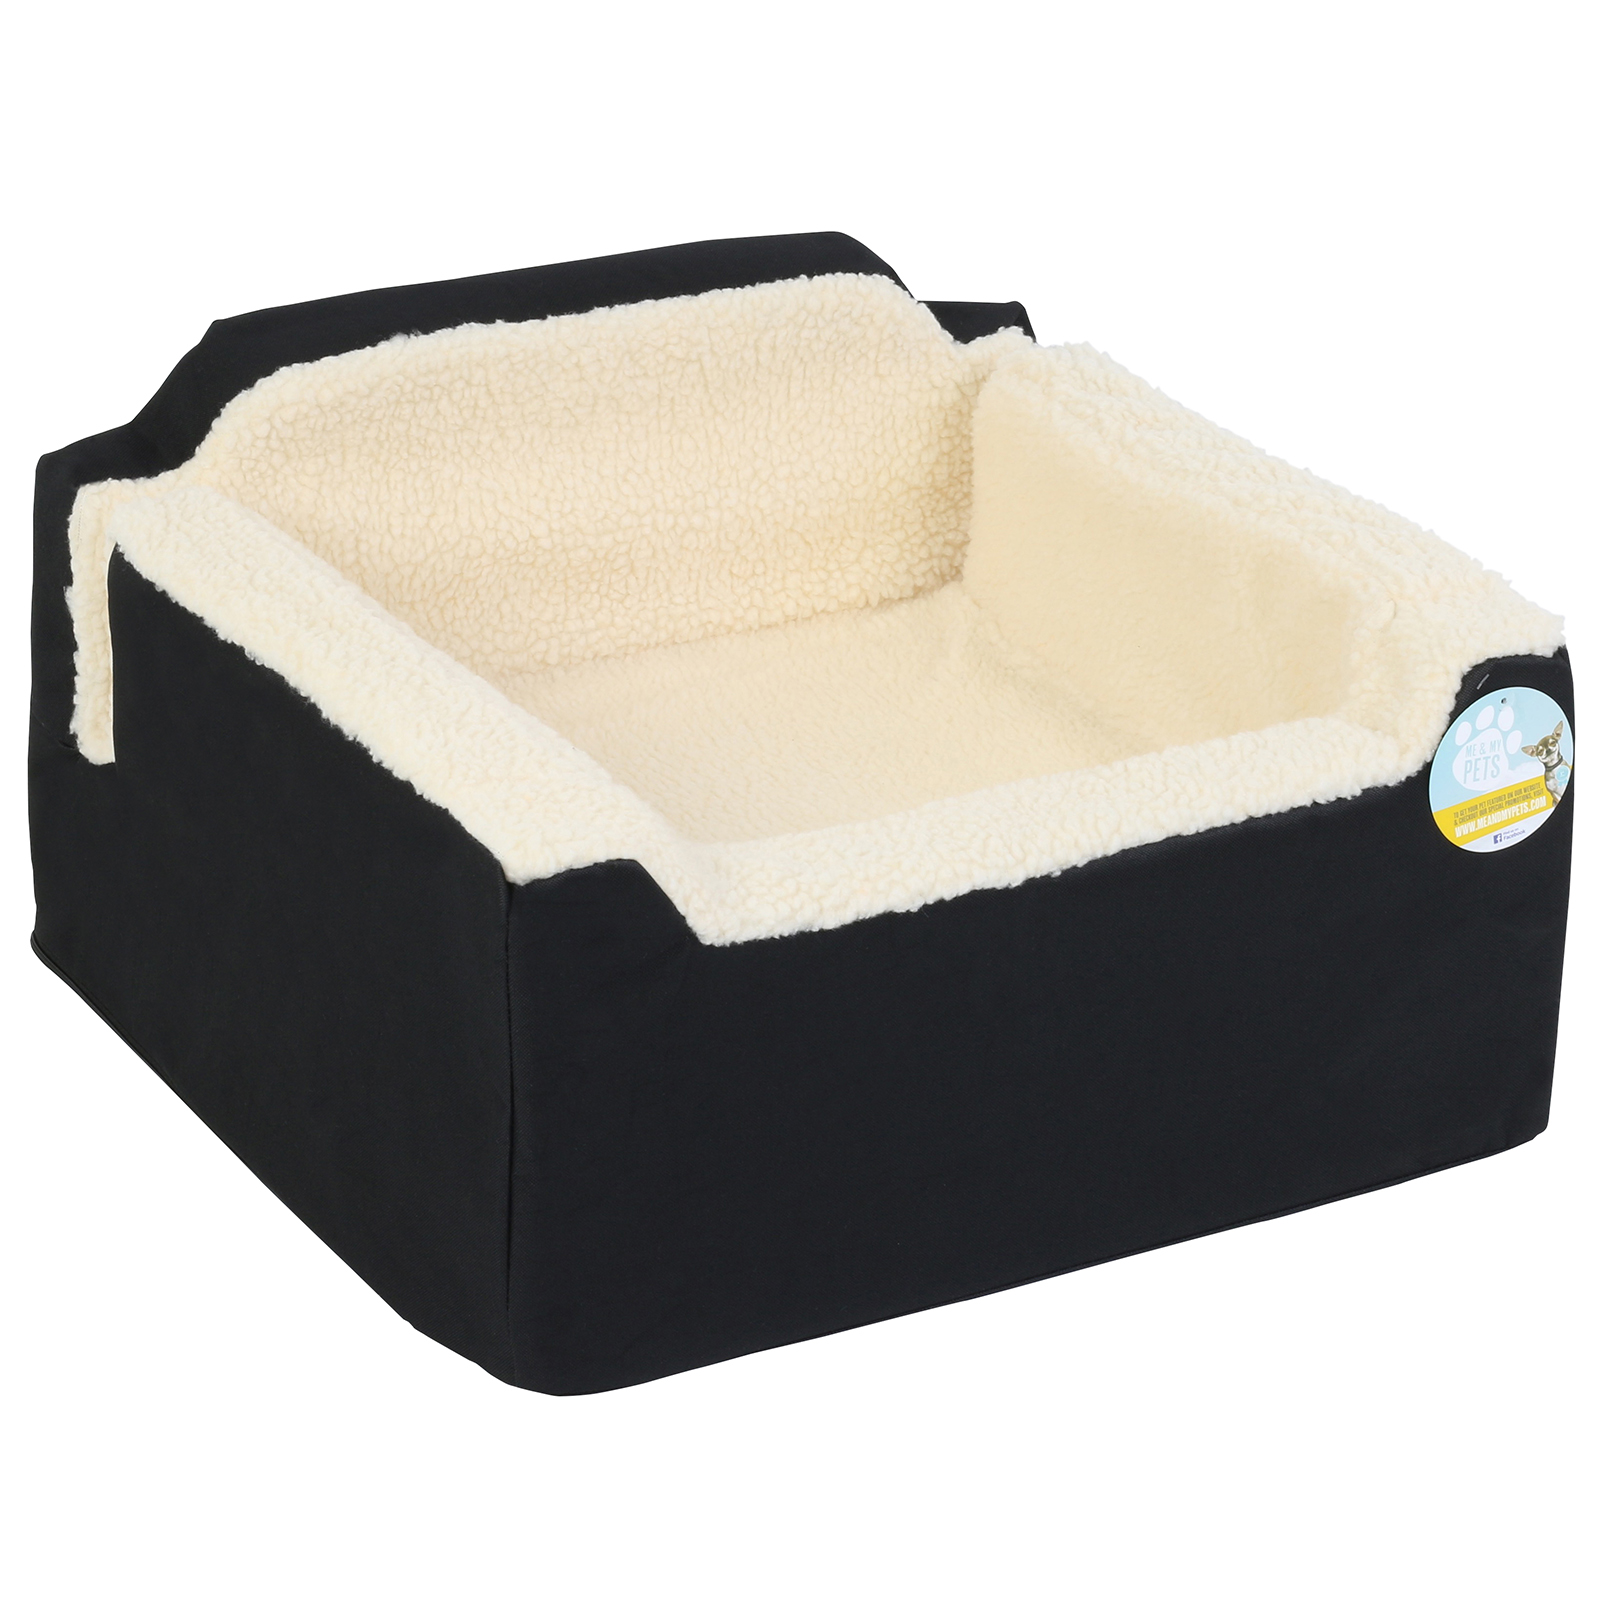 Small in Small /& Medium 32 x 42 x 42cm Dog Puppy Pet Soft Car Booster Safety Seat Travel Safe , Green 6 Available Colours